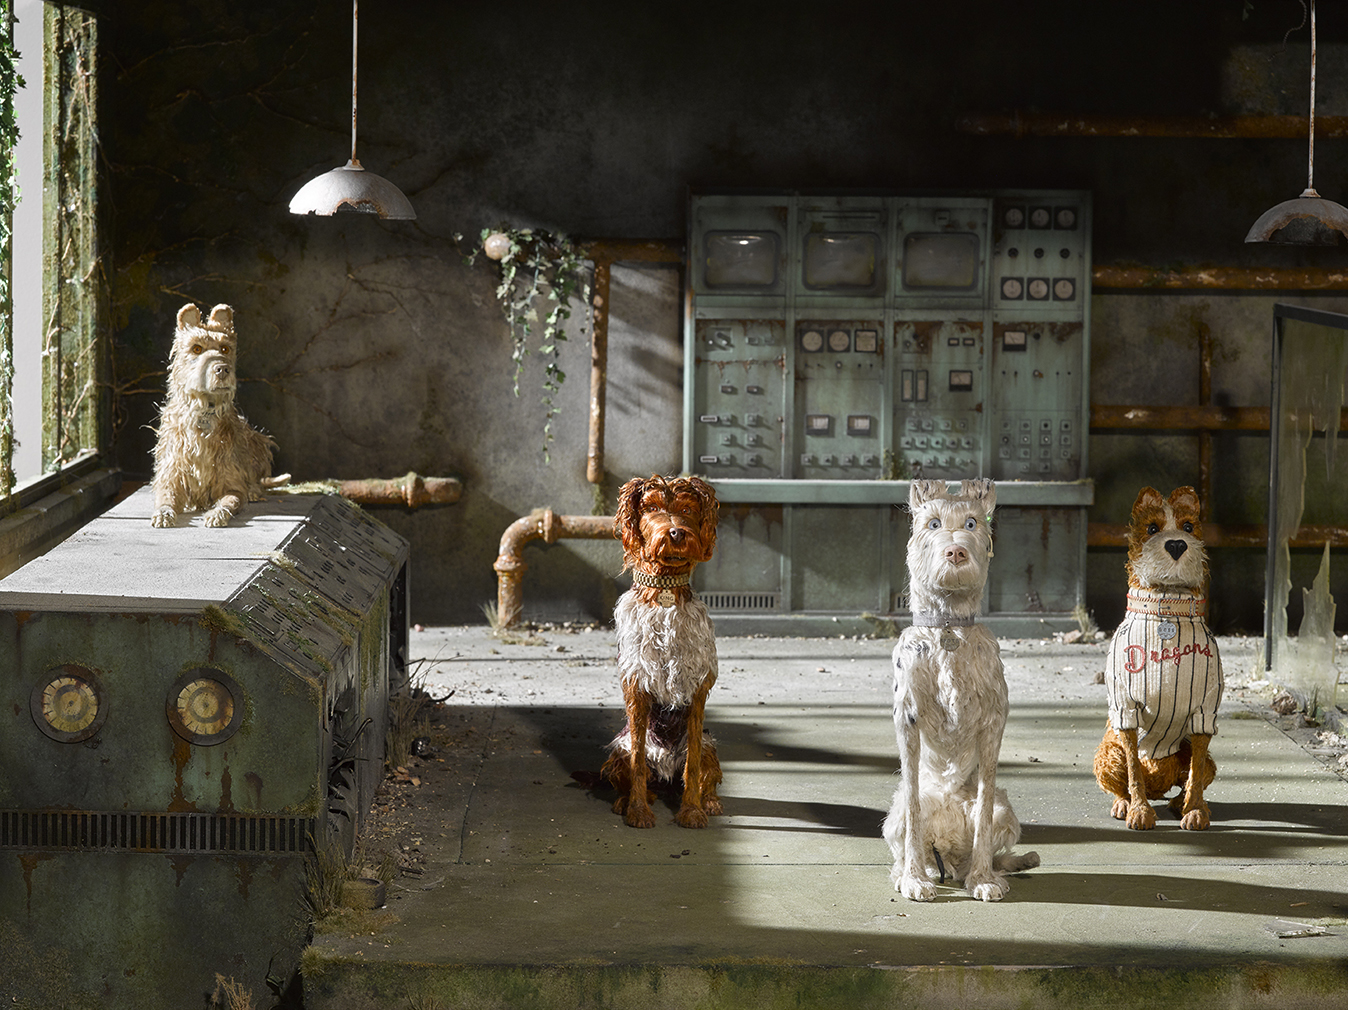 Sets from Wes Anderson's Isle of Dogs